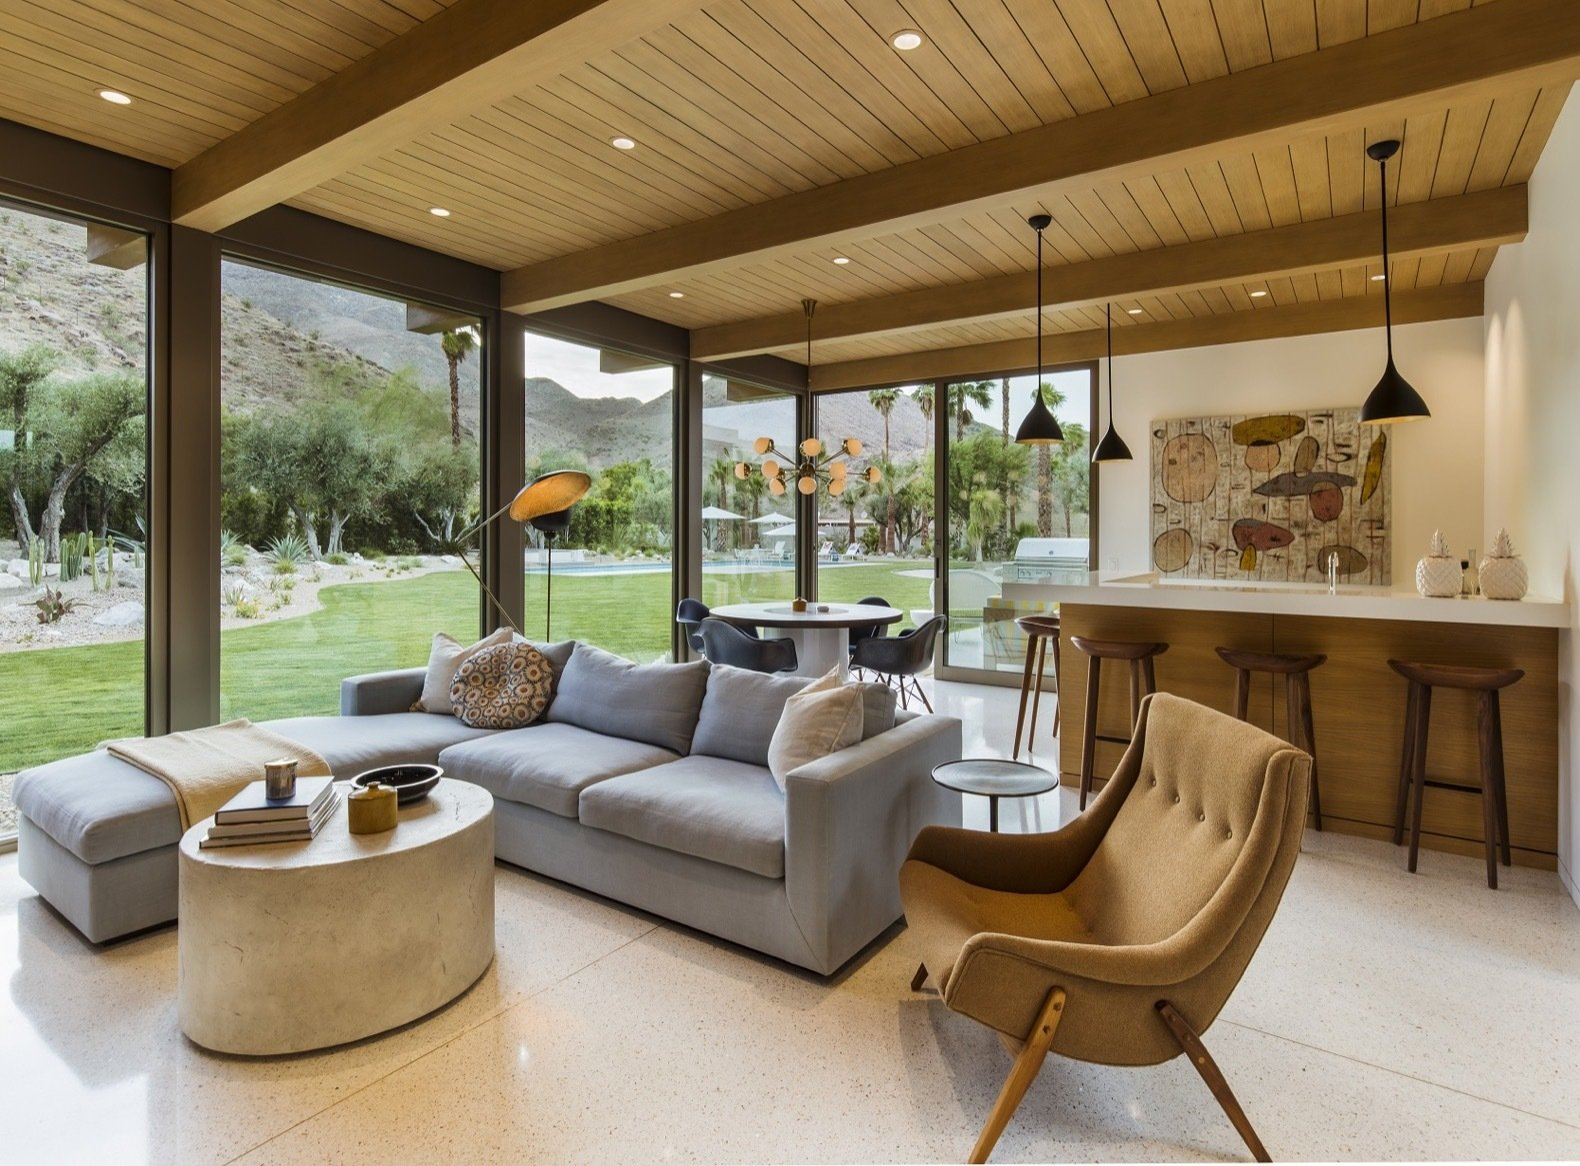 Living Room, Pendant Lighting, Chair, Coffee Tables, Sectional, Terrazzo Floor, and Recessed Lighting Located across the entrance, the cozy family room includes a mini bar and overlooks the outdoor patio and backyard with the relocated pool.